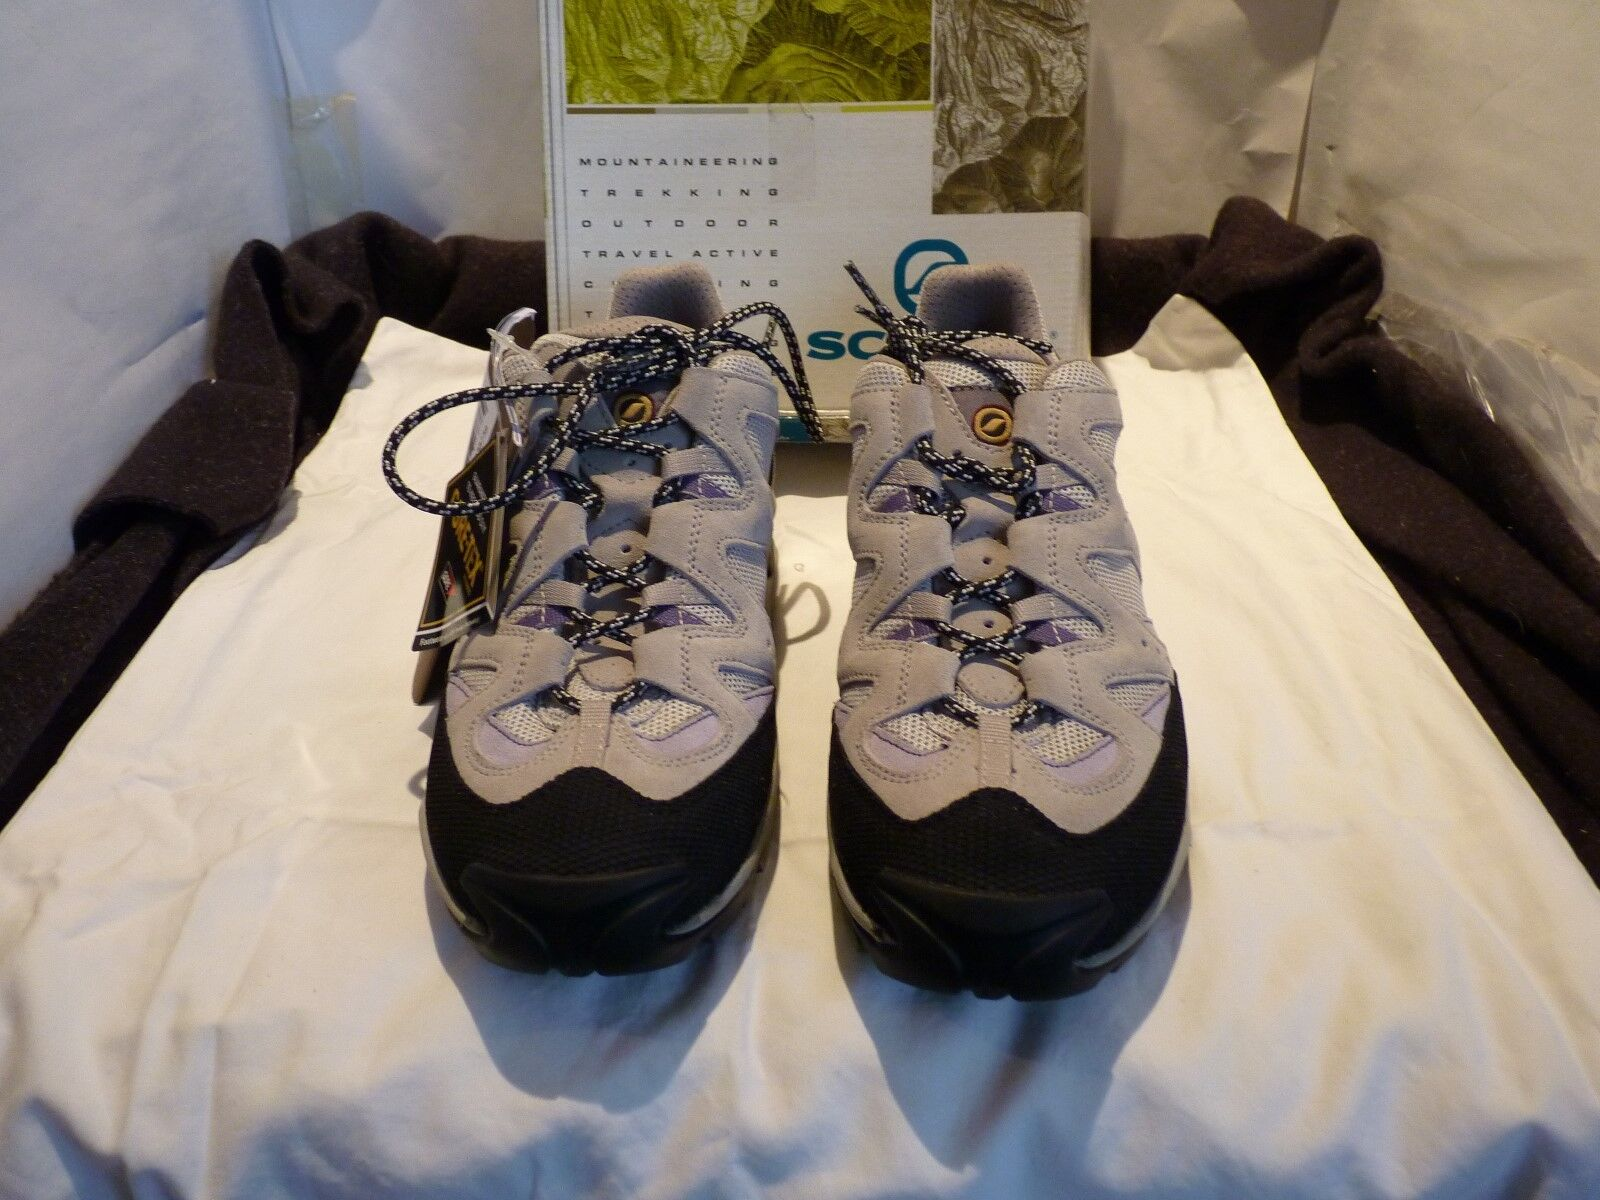 NEW NEW NEW WOMENS SCARPA ARIA XCR SILER/LILAC HIKING SHOES CAMPING WALKING TRAVEL dcdee7